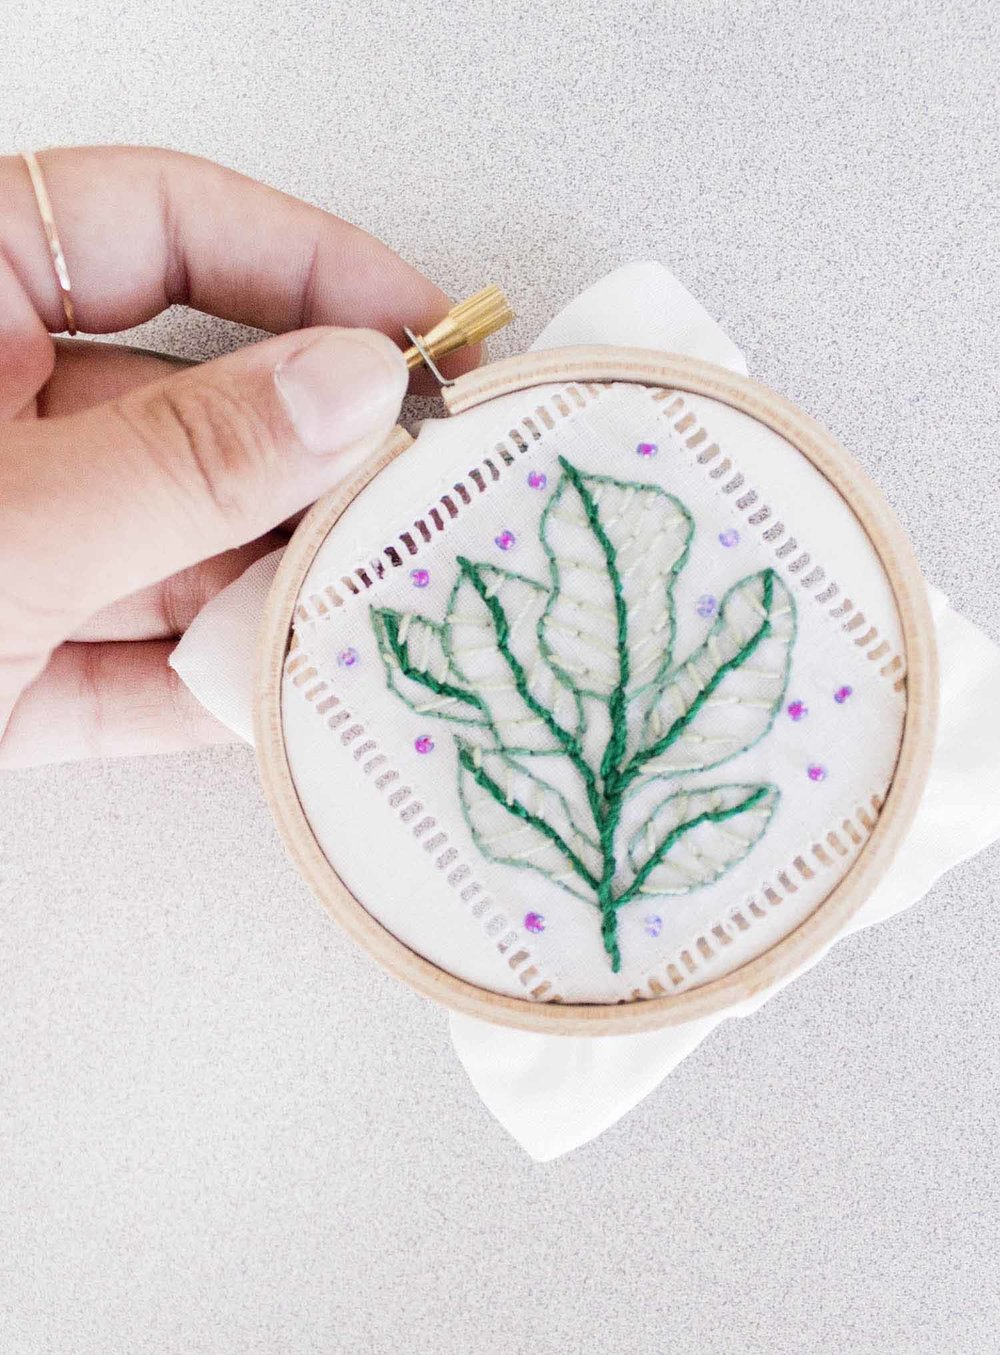 embroidery_leaves_2.jpg